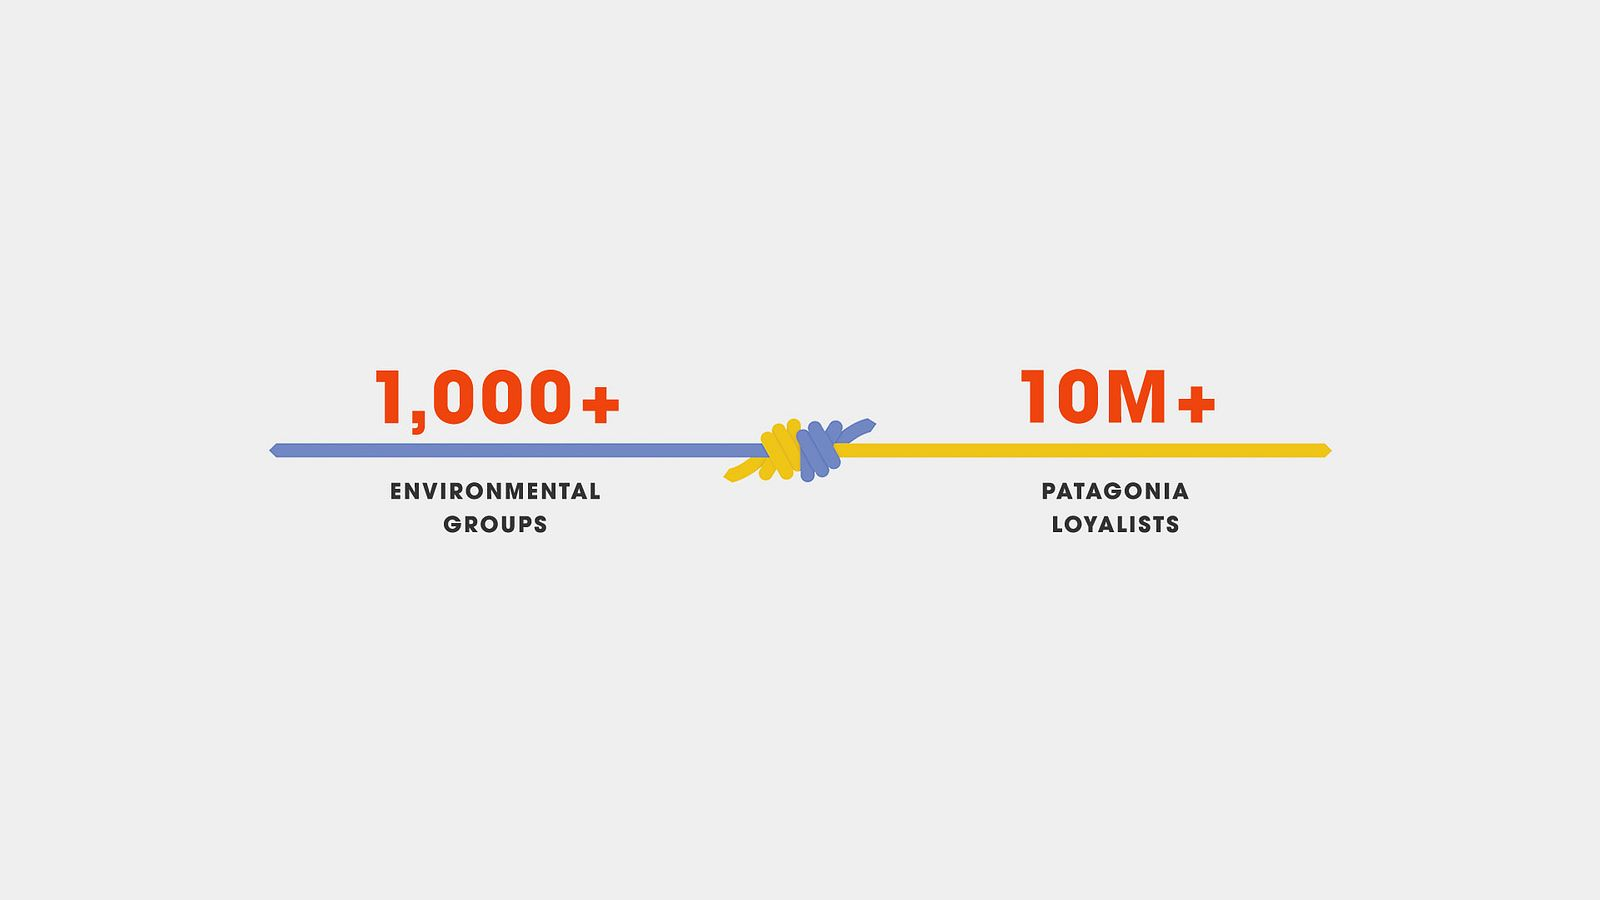 Text reading &ldqou;More than 1000 environmental groups&rdqou; connected to &ldqou;more than 10 million Patagonia loyalists&rdqou; with a knot graphic.